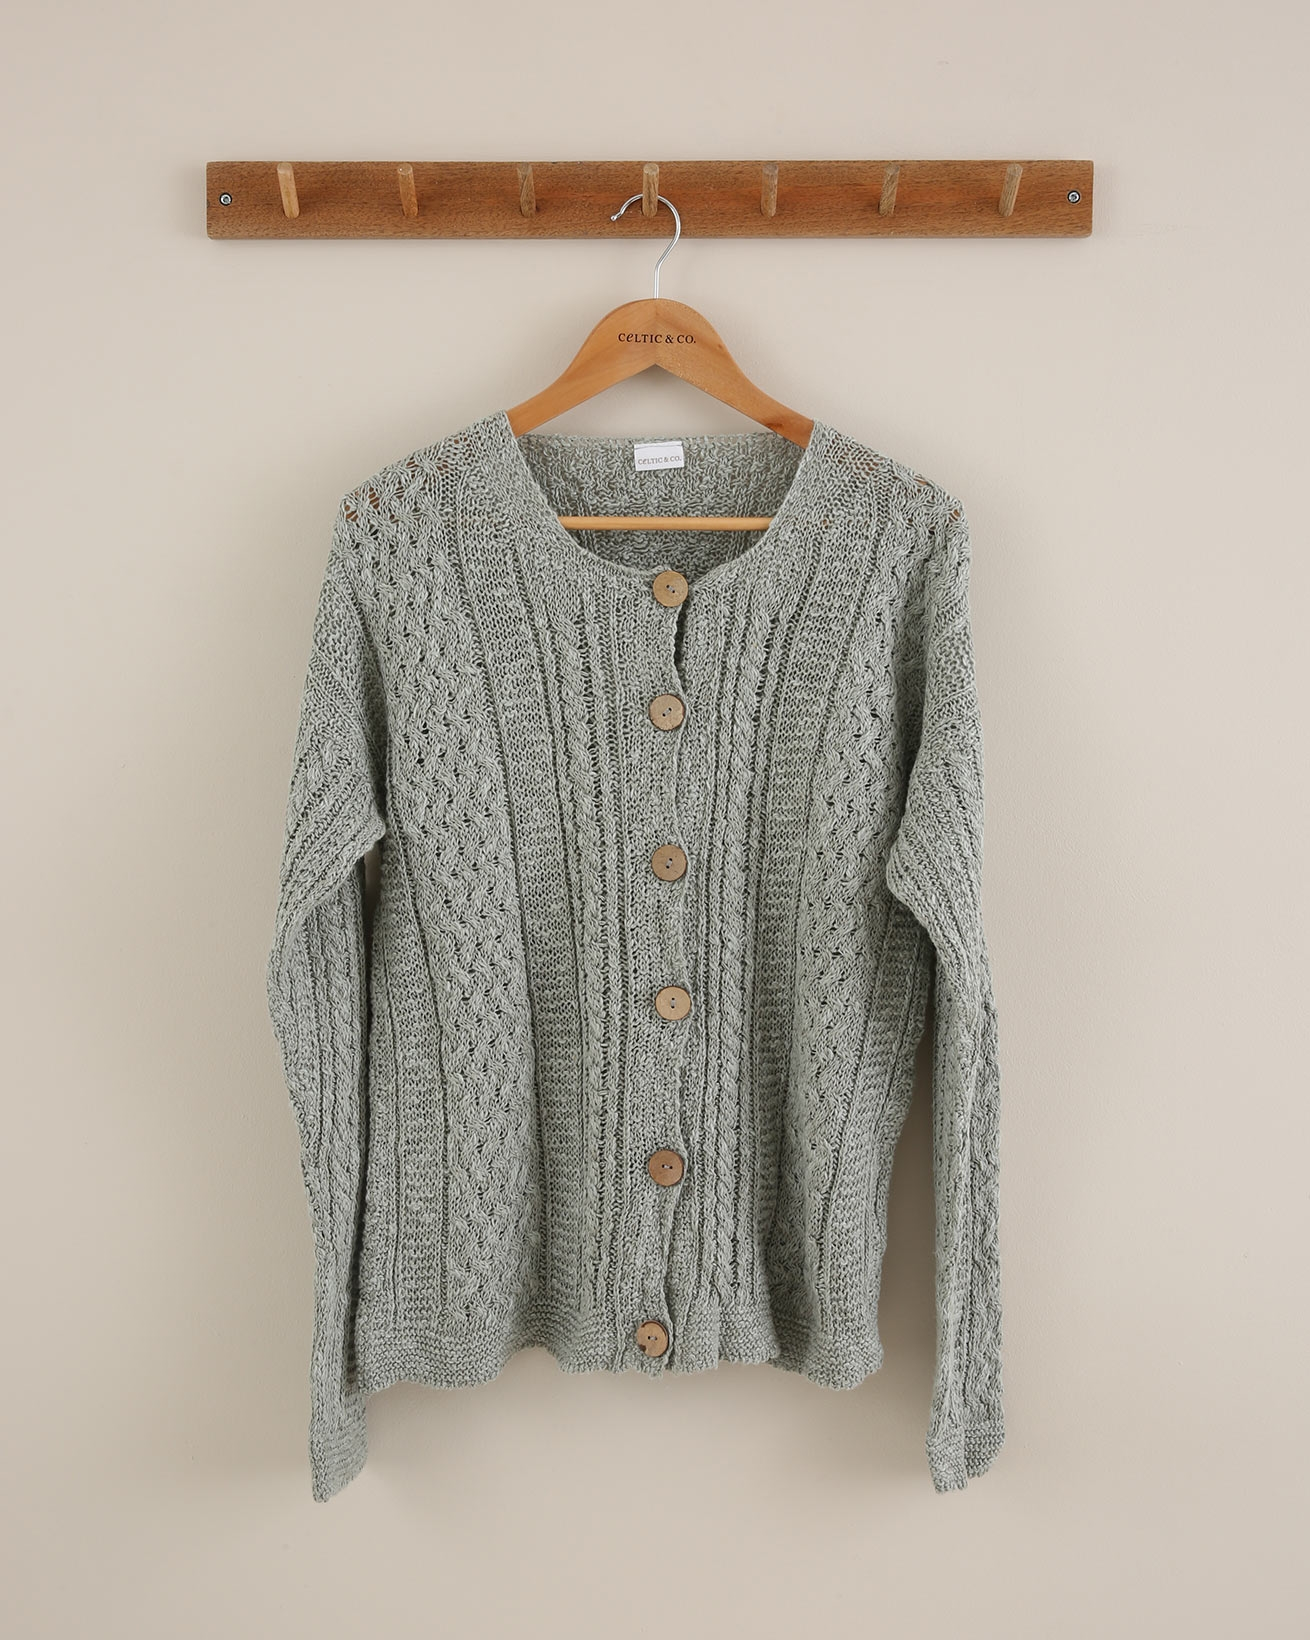 Linen Cotton Cable Cardigan - Small - Sage - 1653